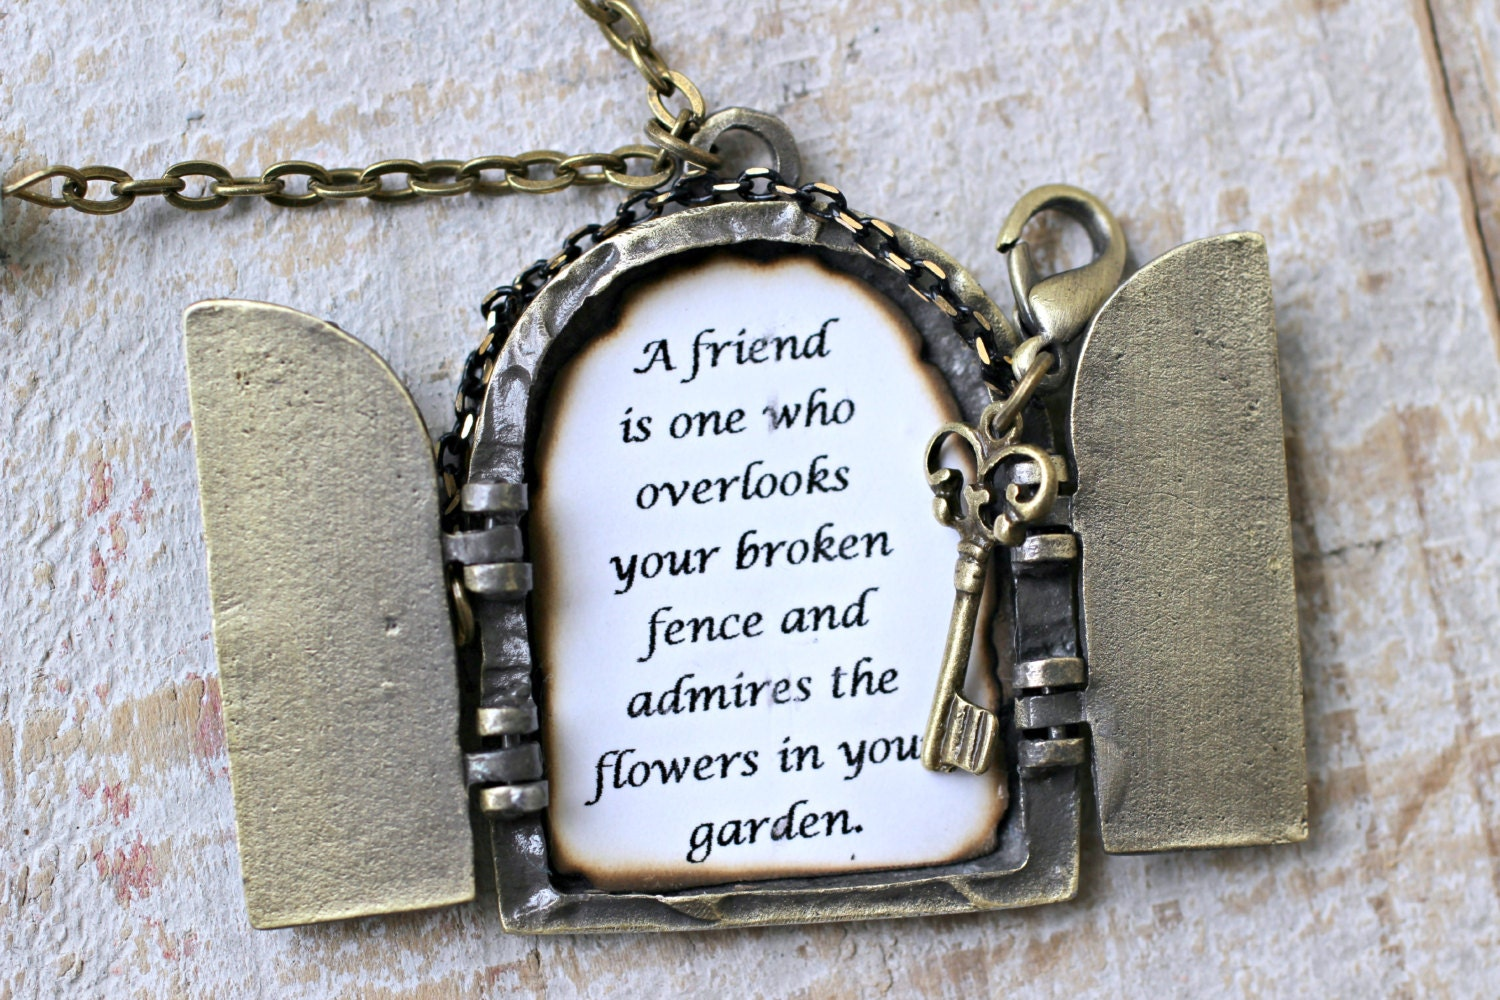 by dual lockets etsy locket pin manocelebrates friendship on quotes